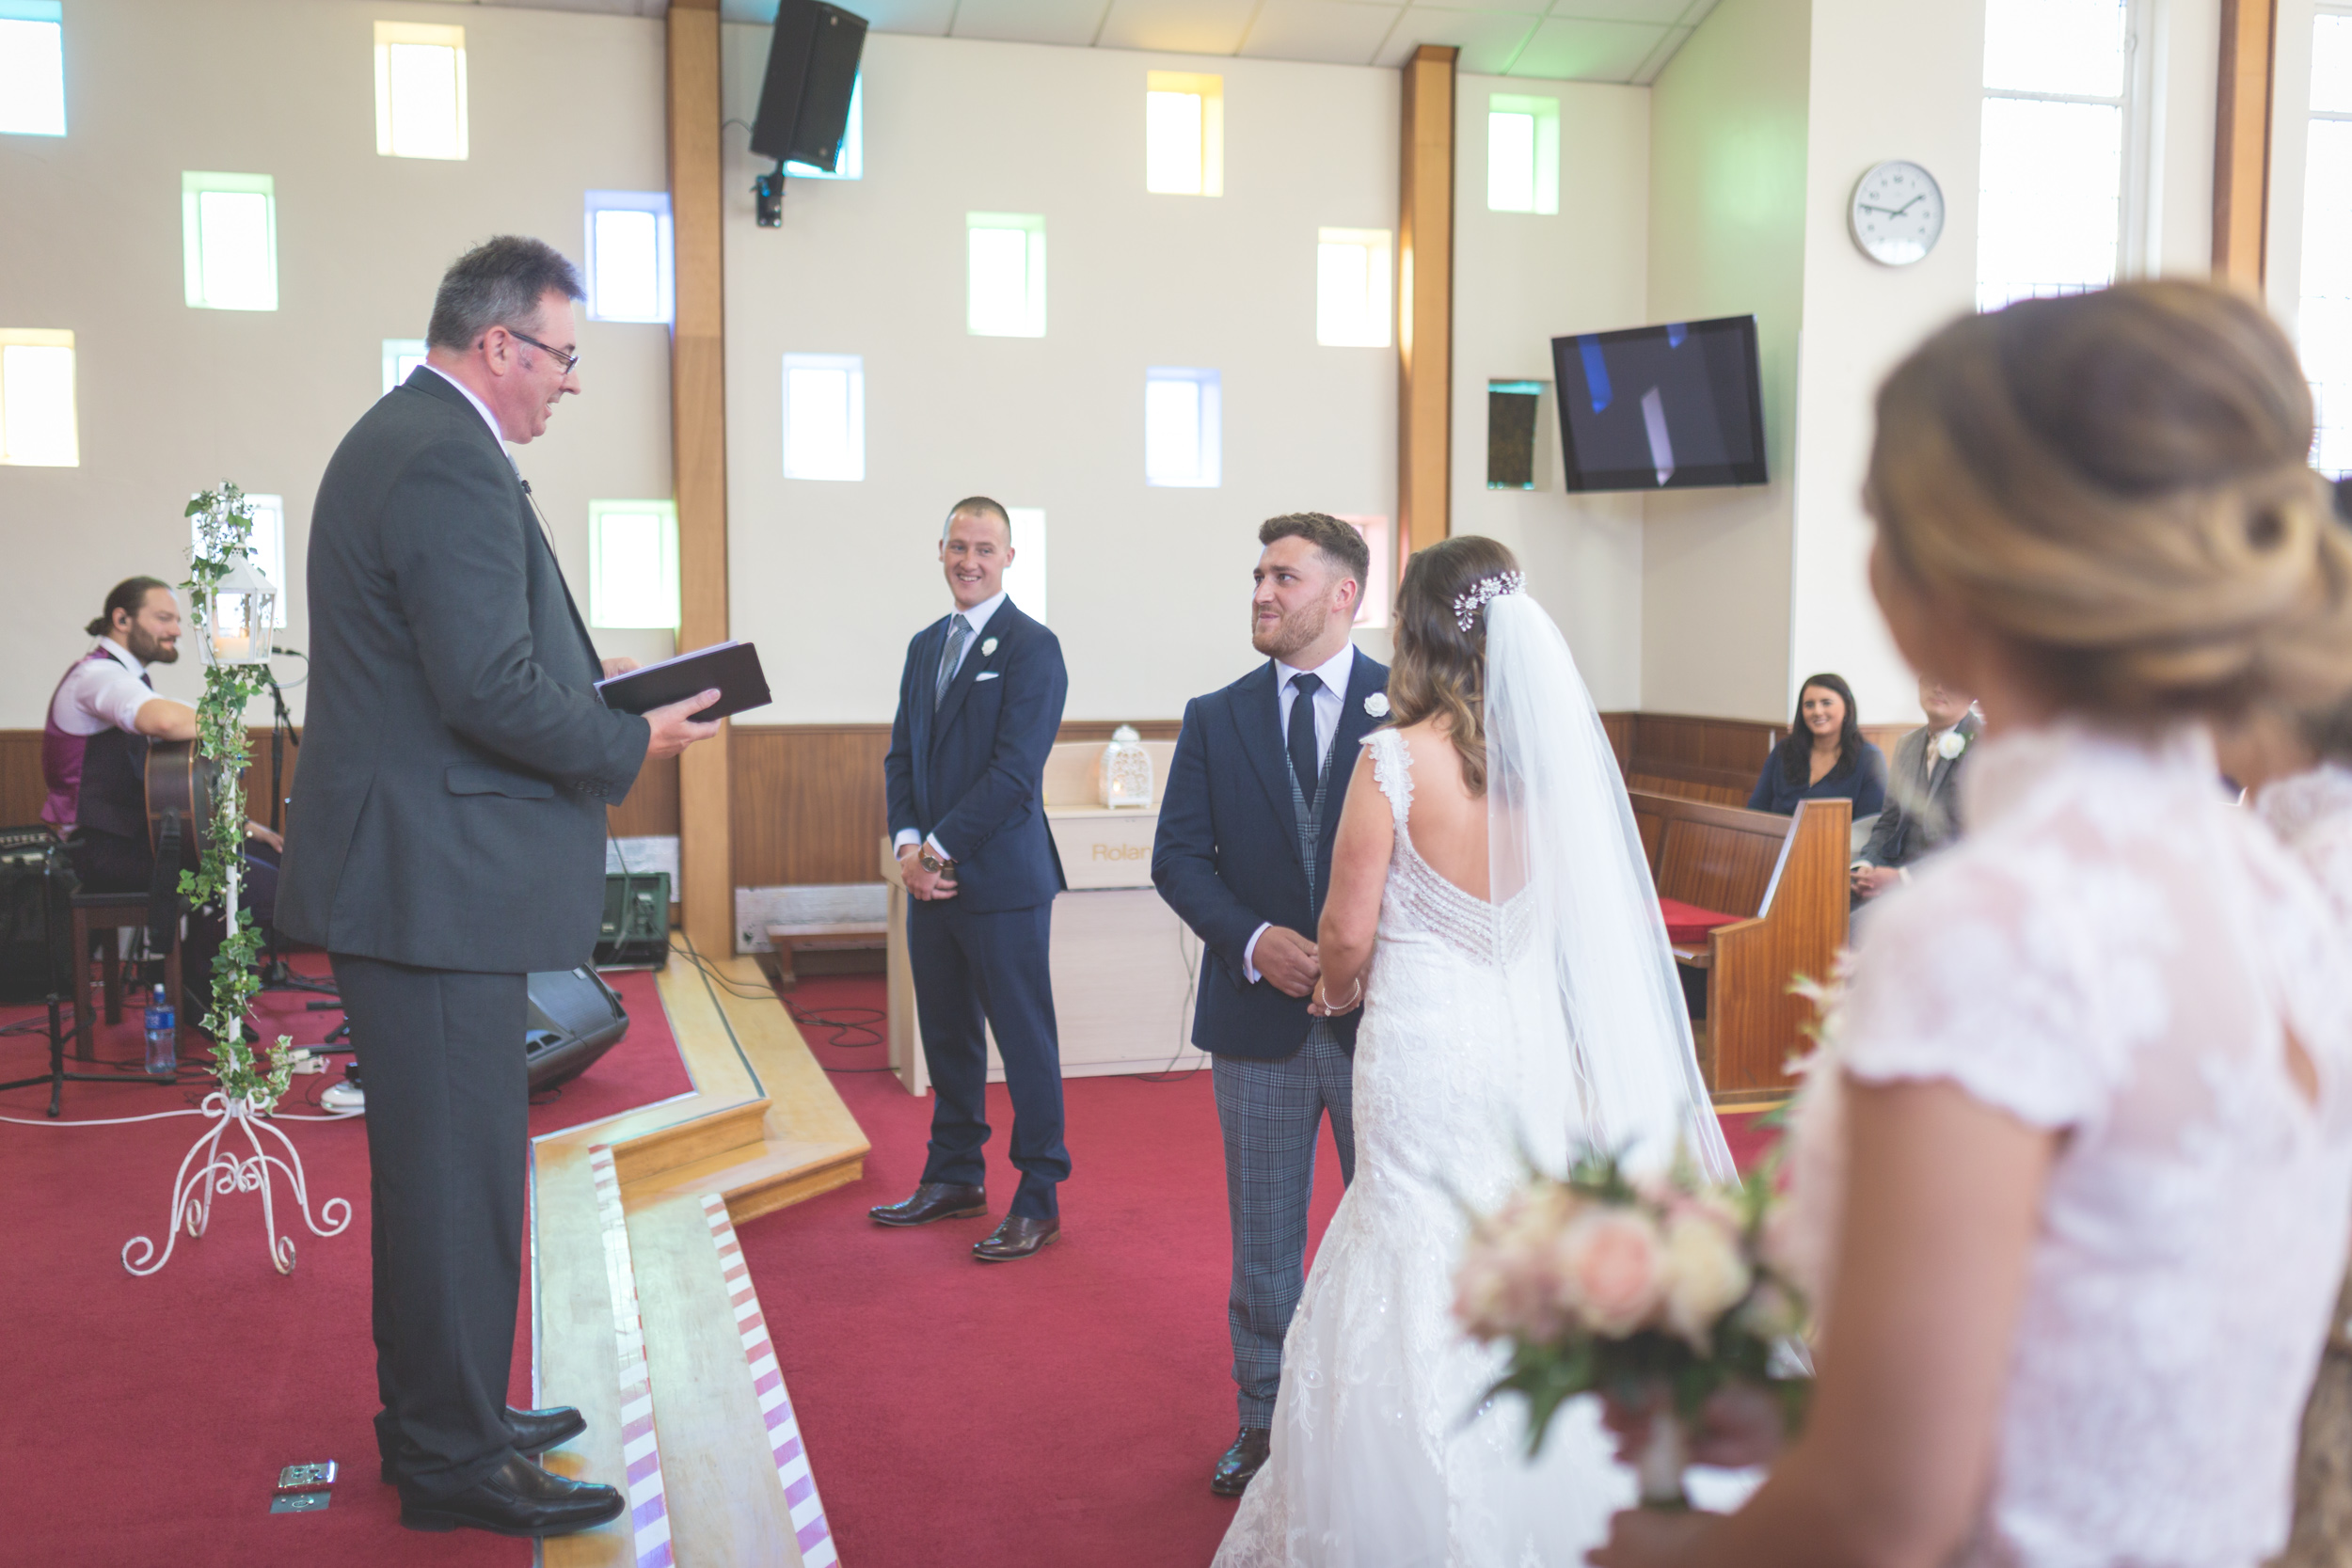 Brian McEwan | Northern Ireland Wedding Photographer | Rebecca & Michael | Ceremony-57.jpg